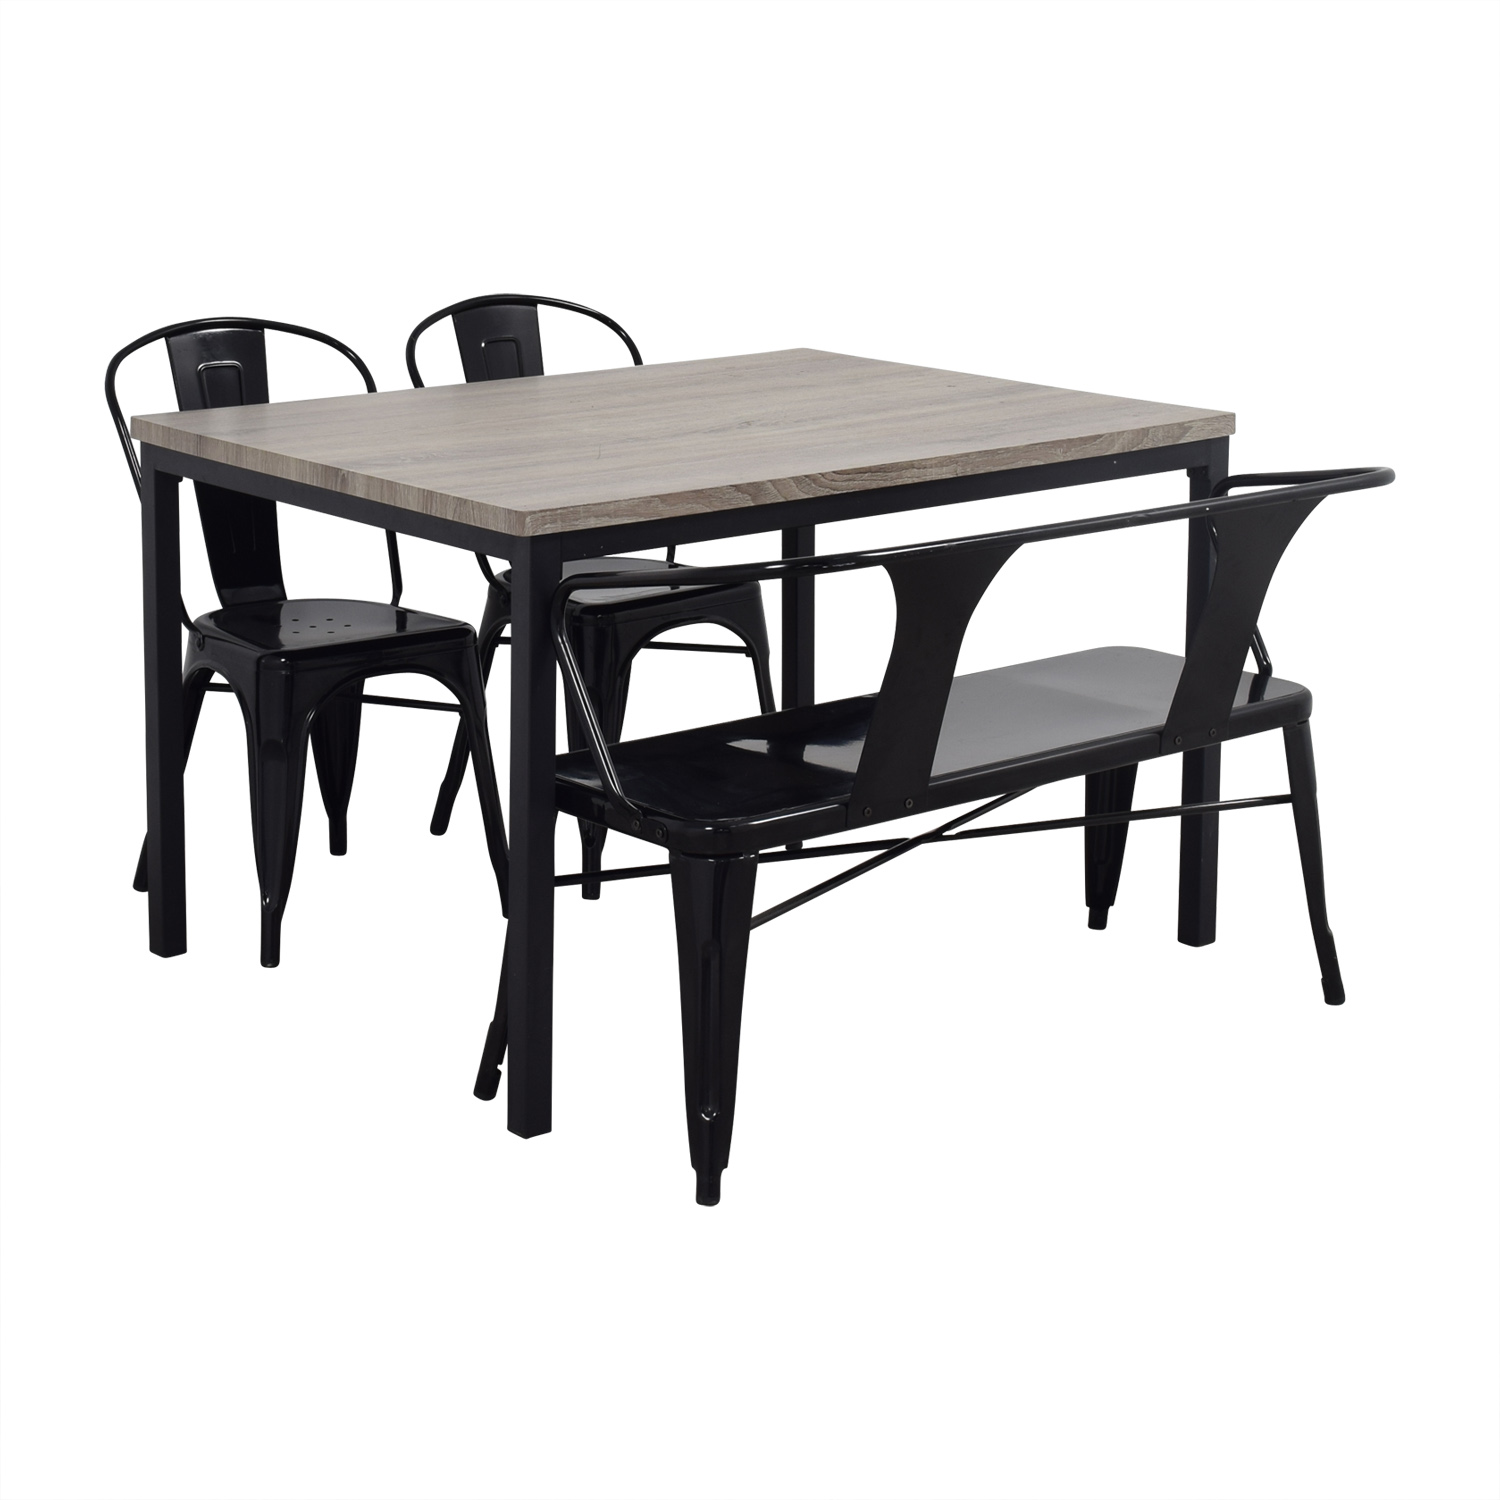 Gray Dining Table Sets ~ Off grey dining table set with chairs and bench tables